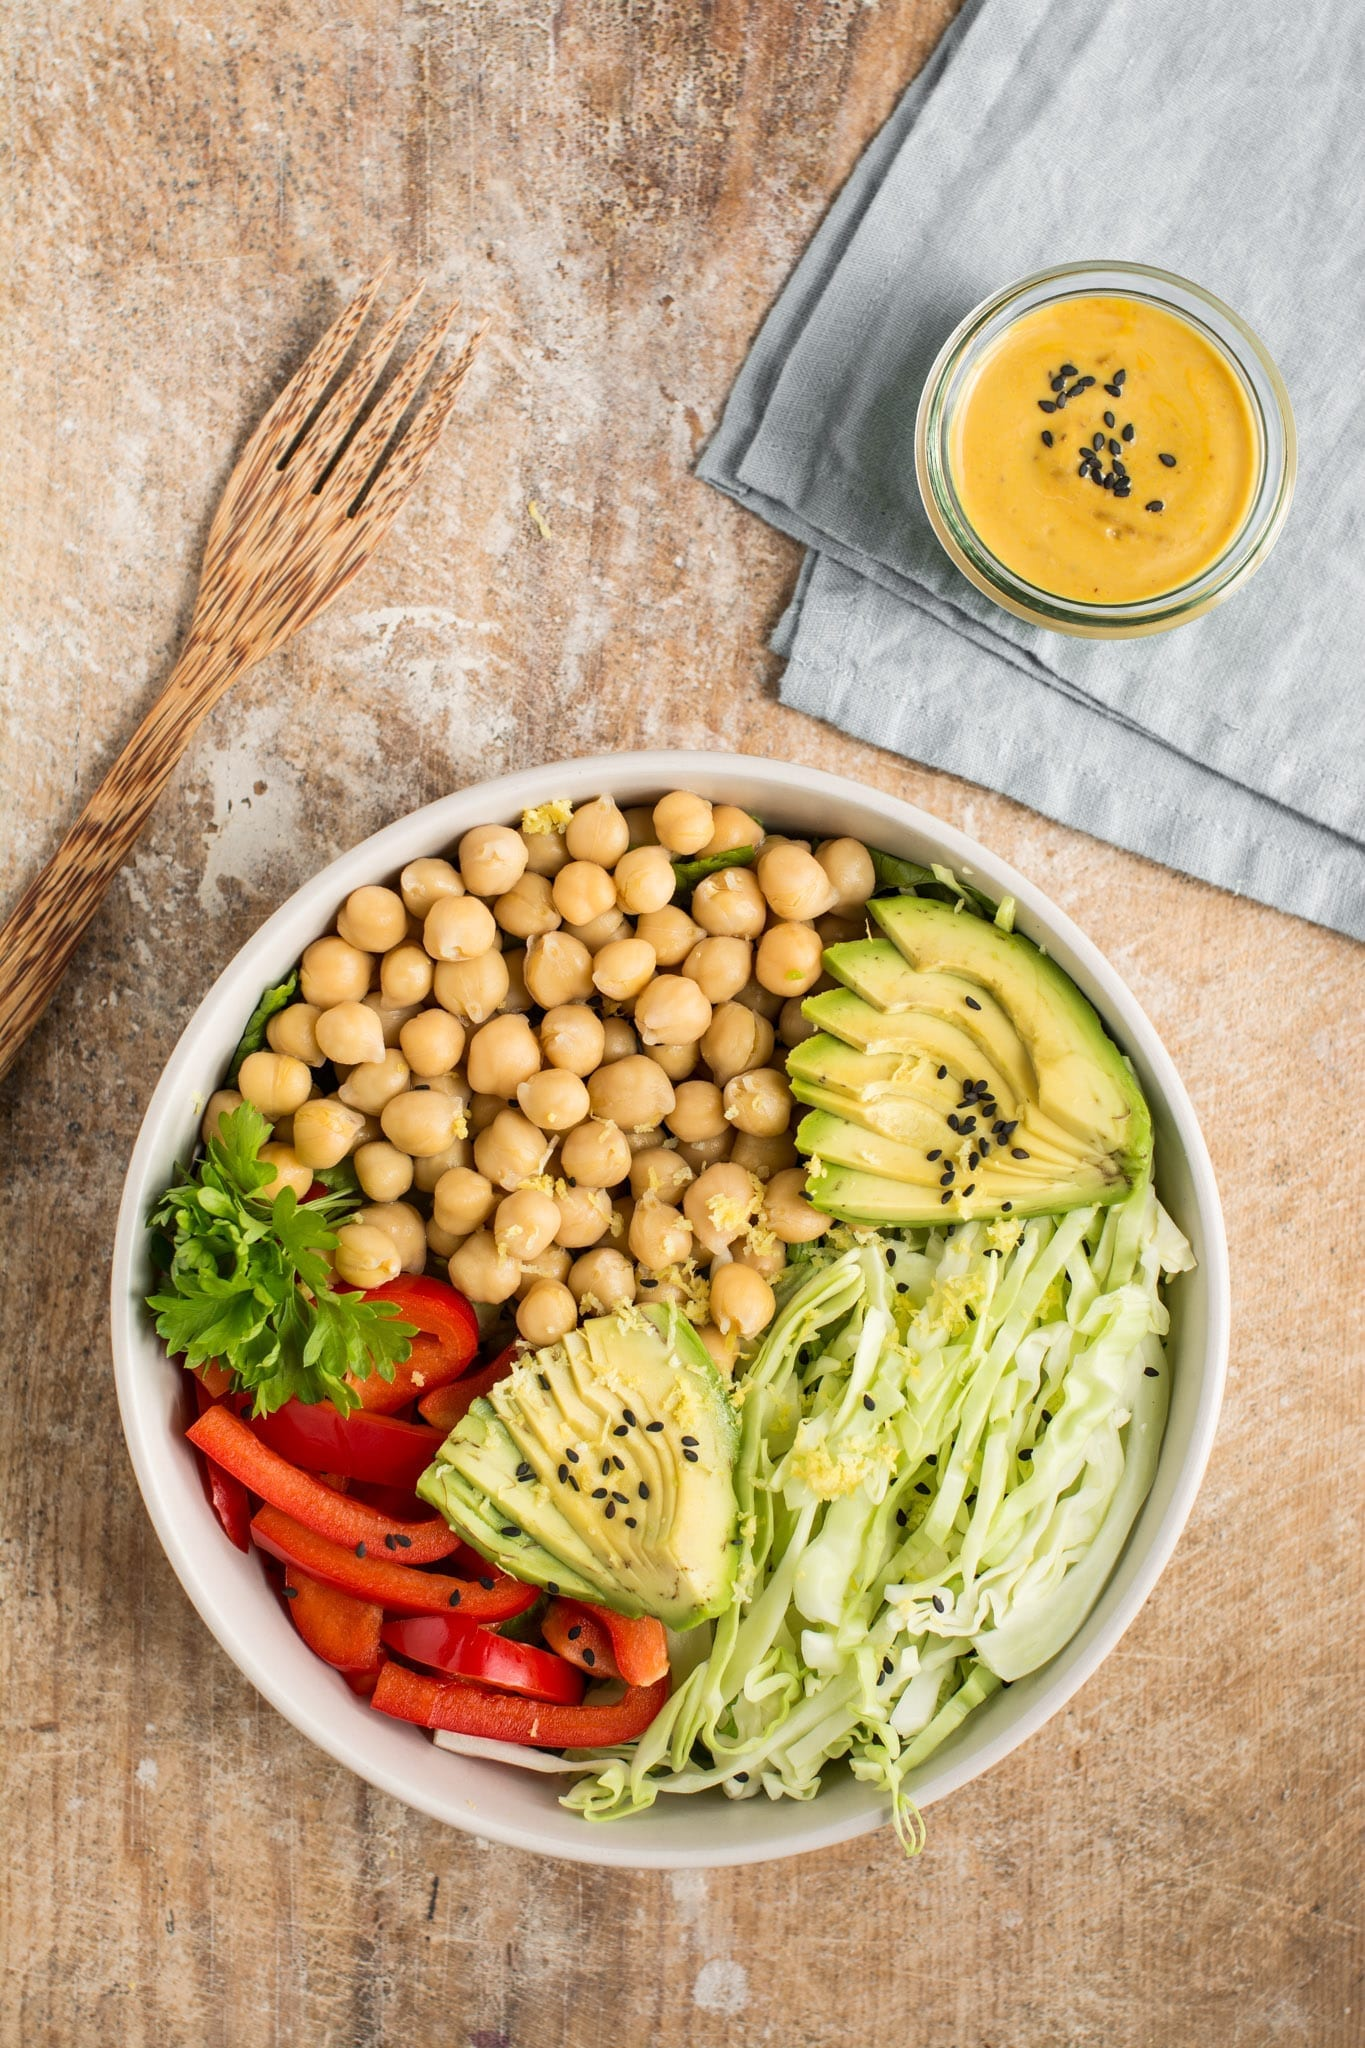 Dr. Greger's Daily Dozen meal plan Lunch Buddha Bowl